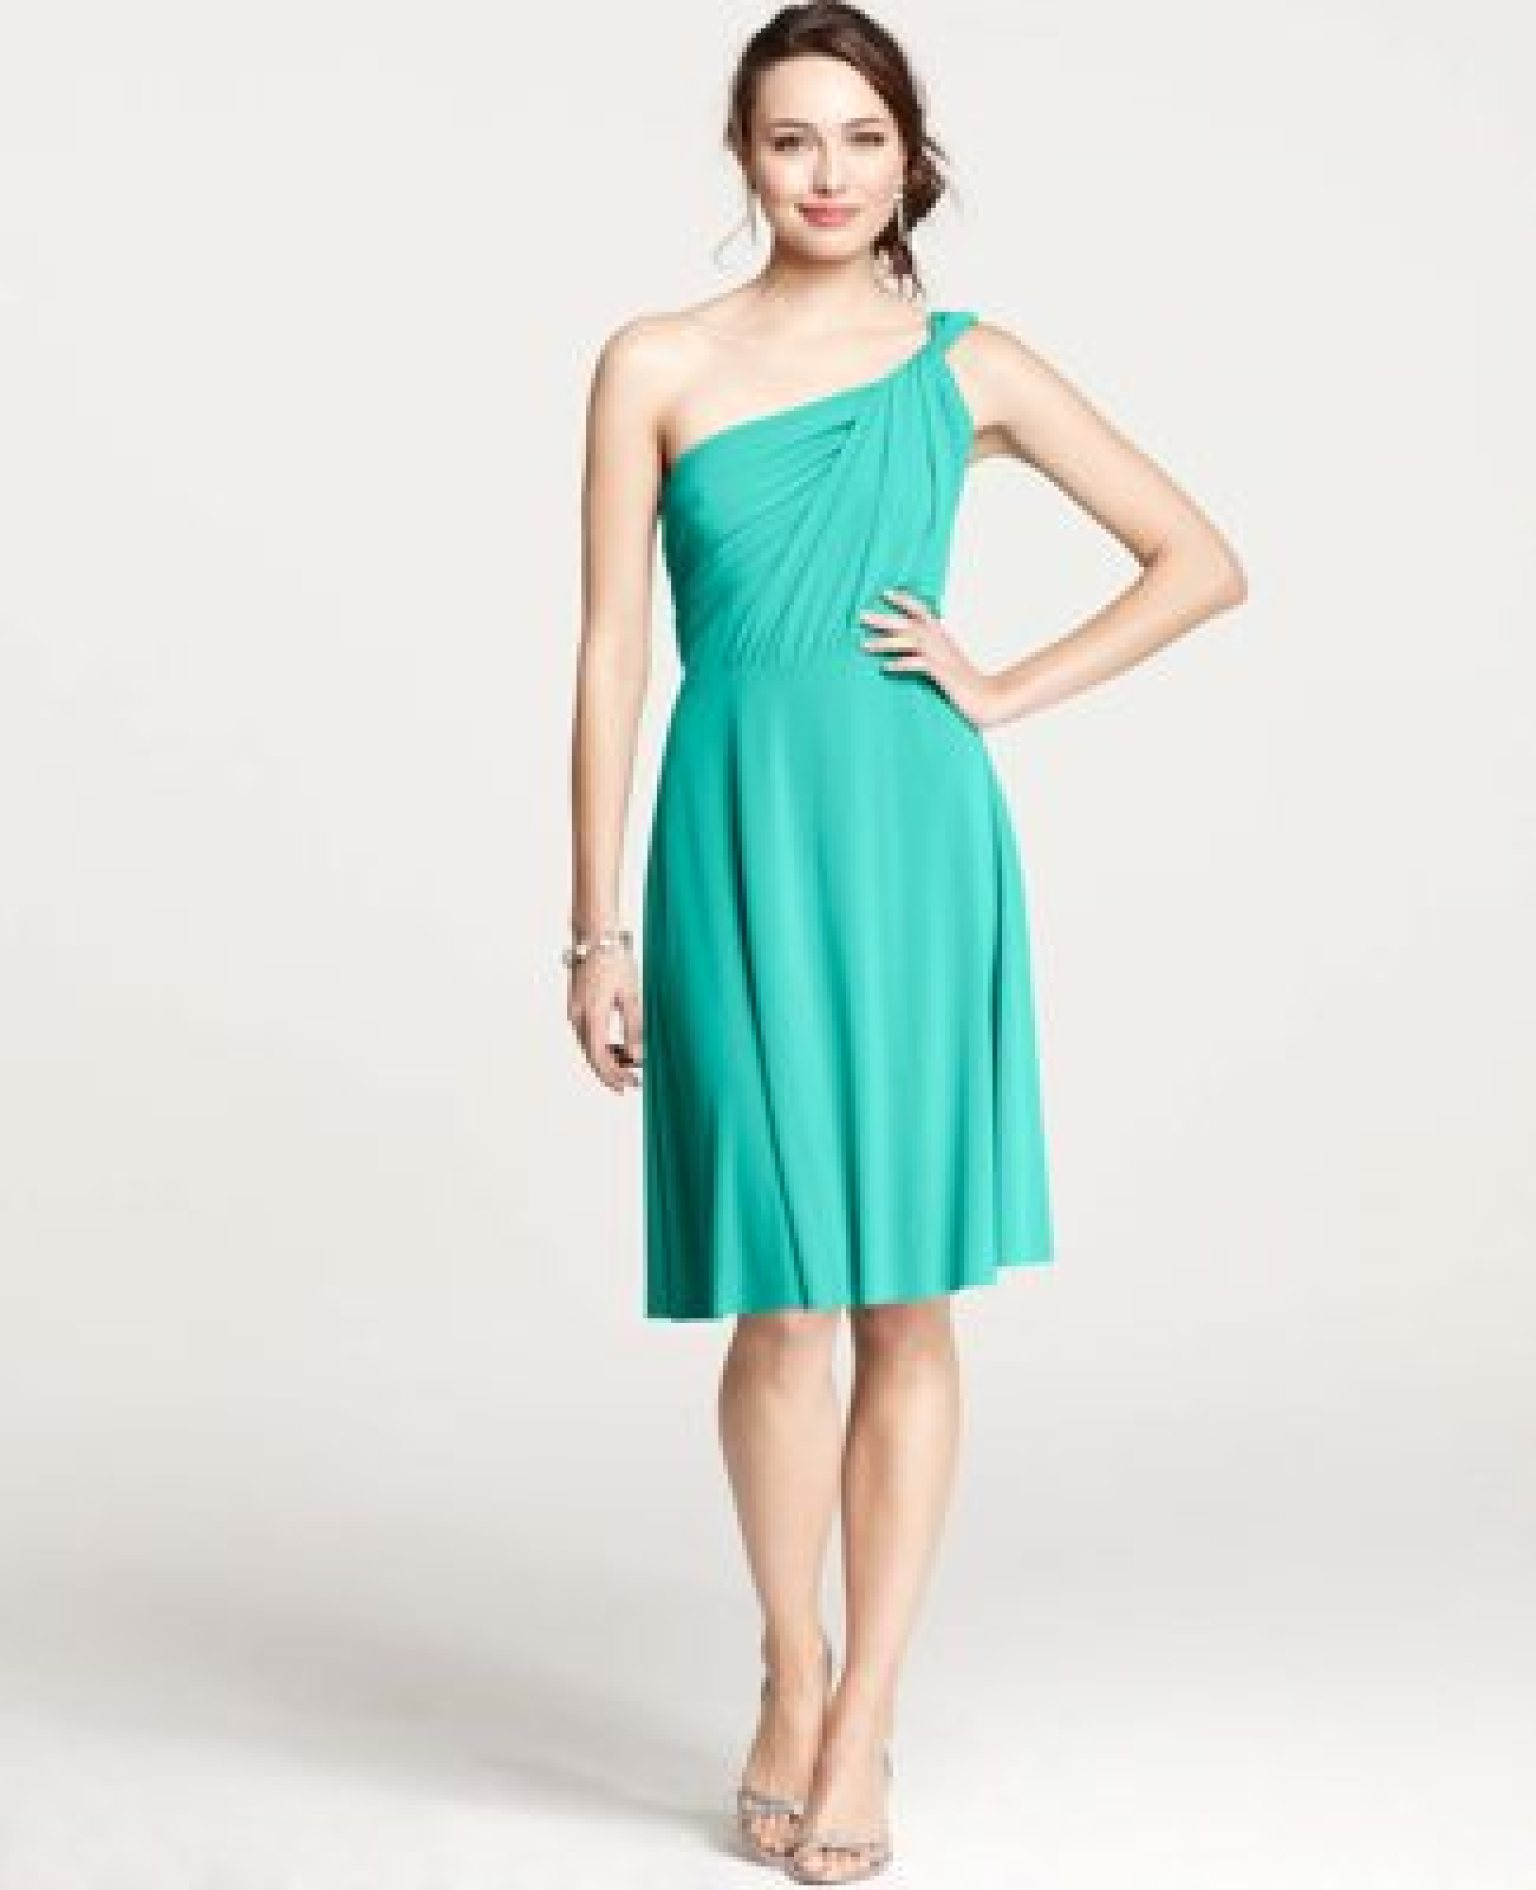 Wedding guest dresses for summer affairs photos huffpost for Spring wedding dress guest